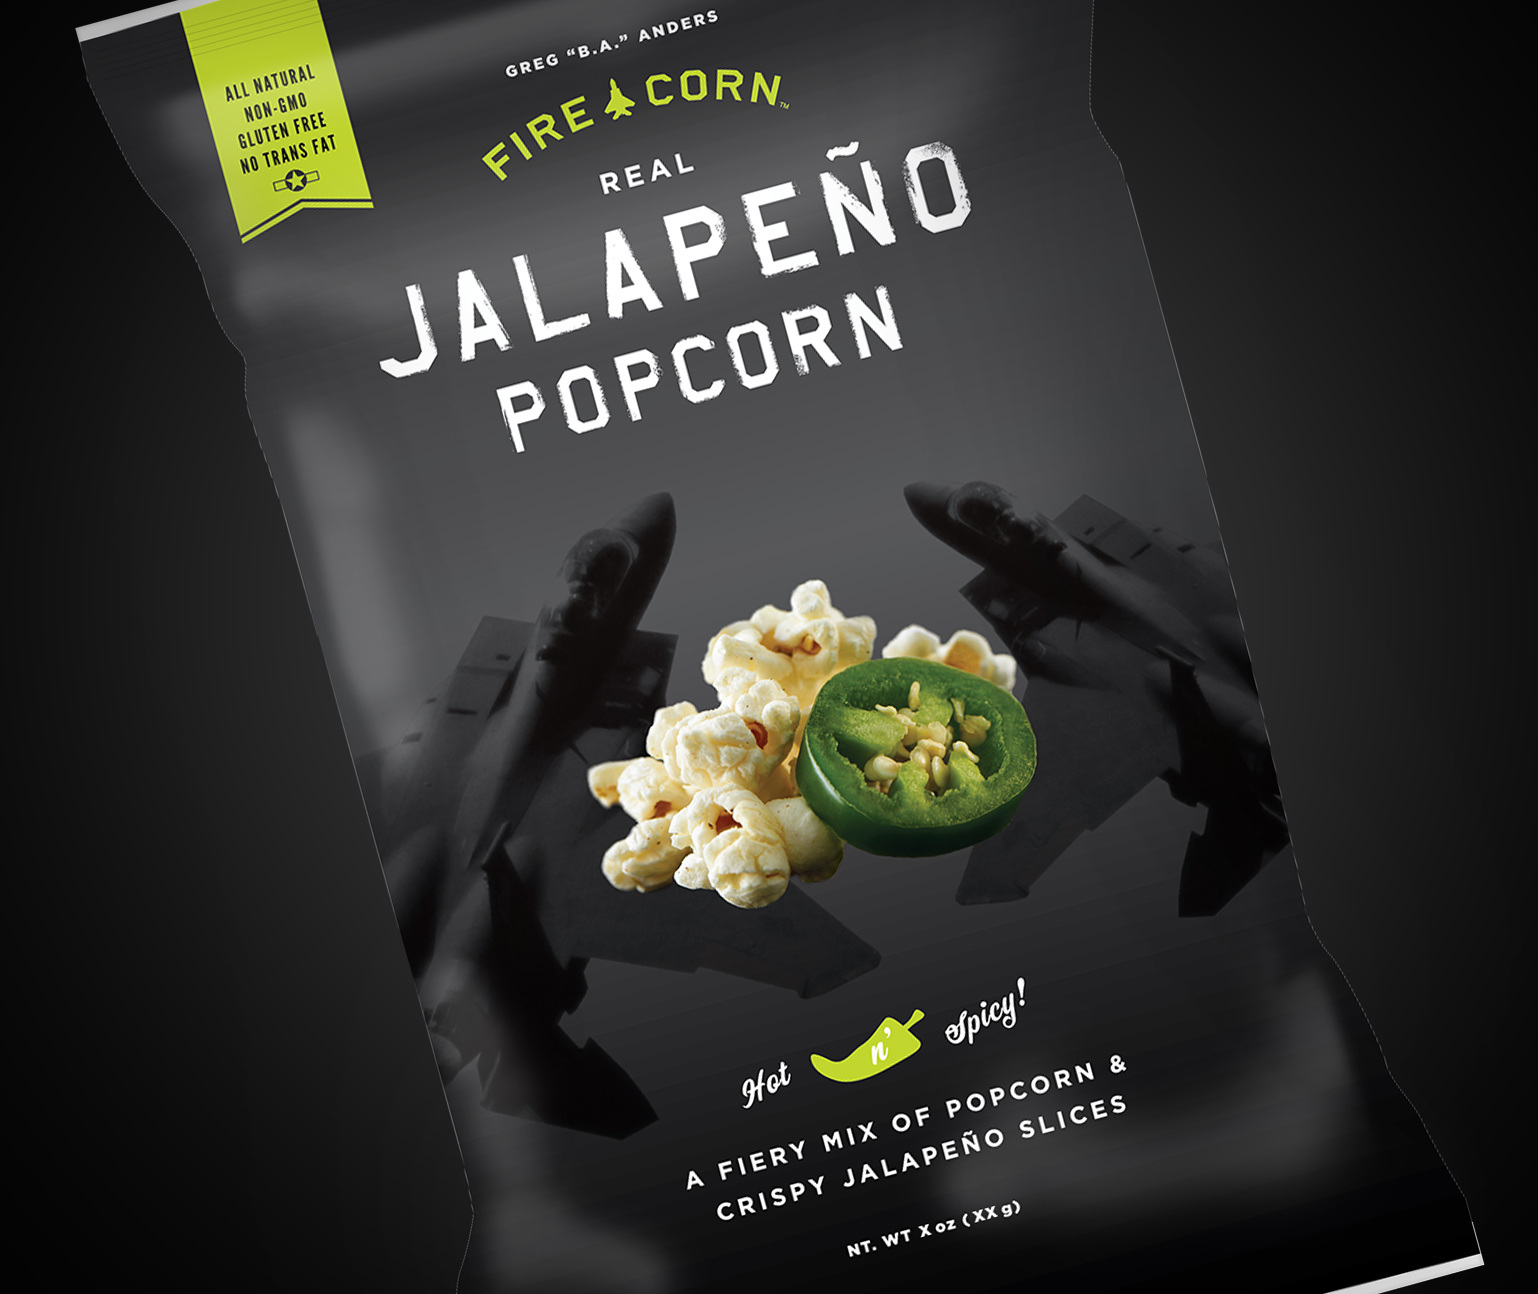 A black bag of popcorn with jets, popcorn, and jalapenos on the packaging design.